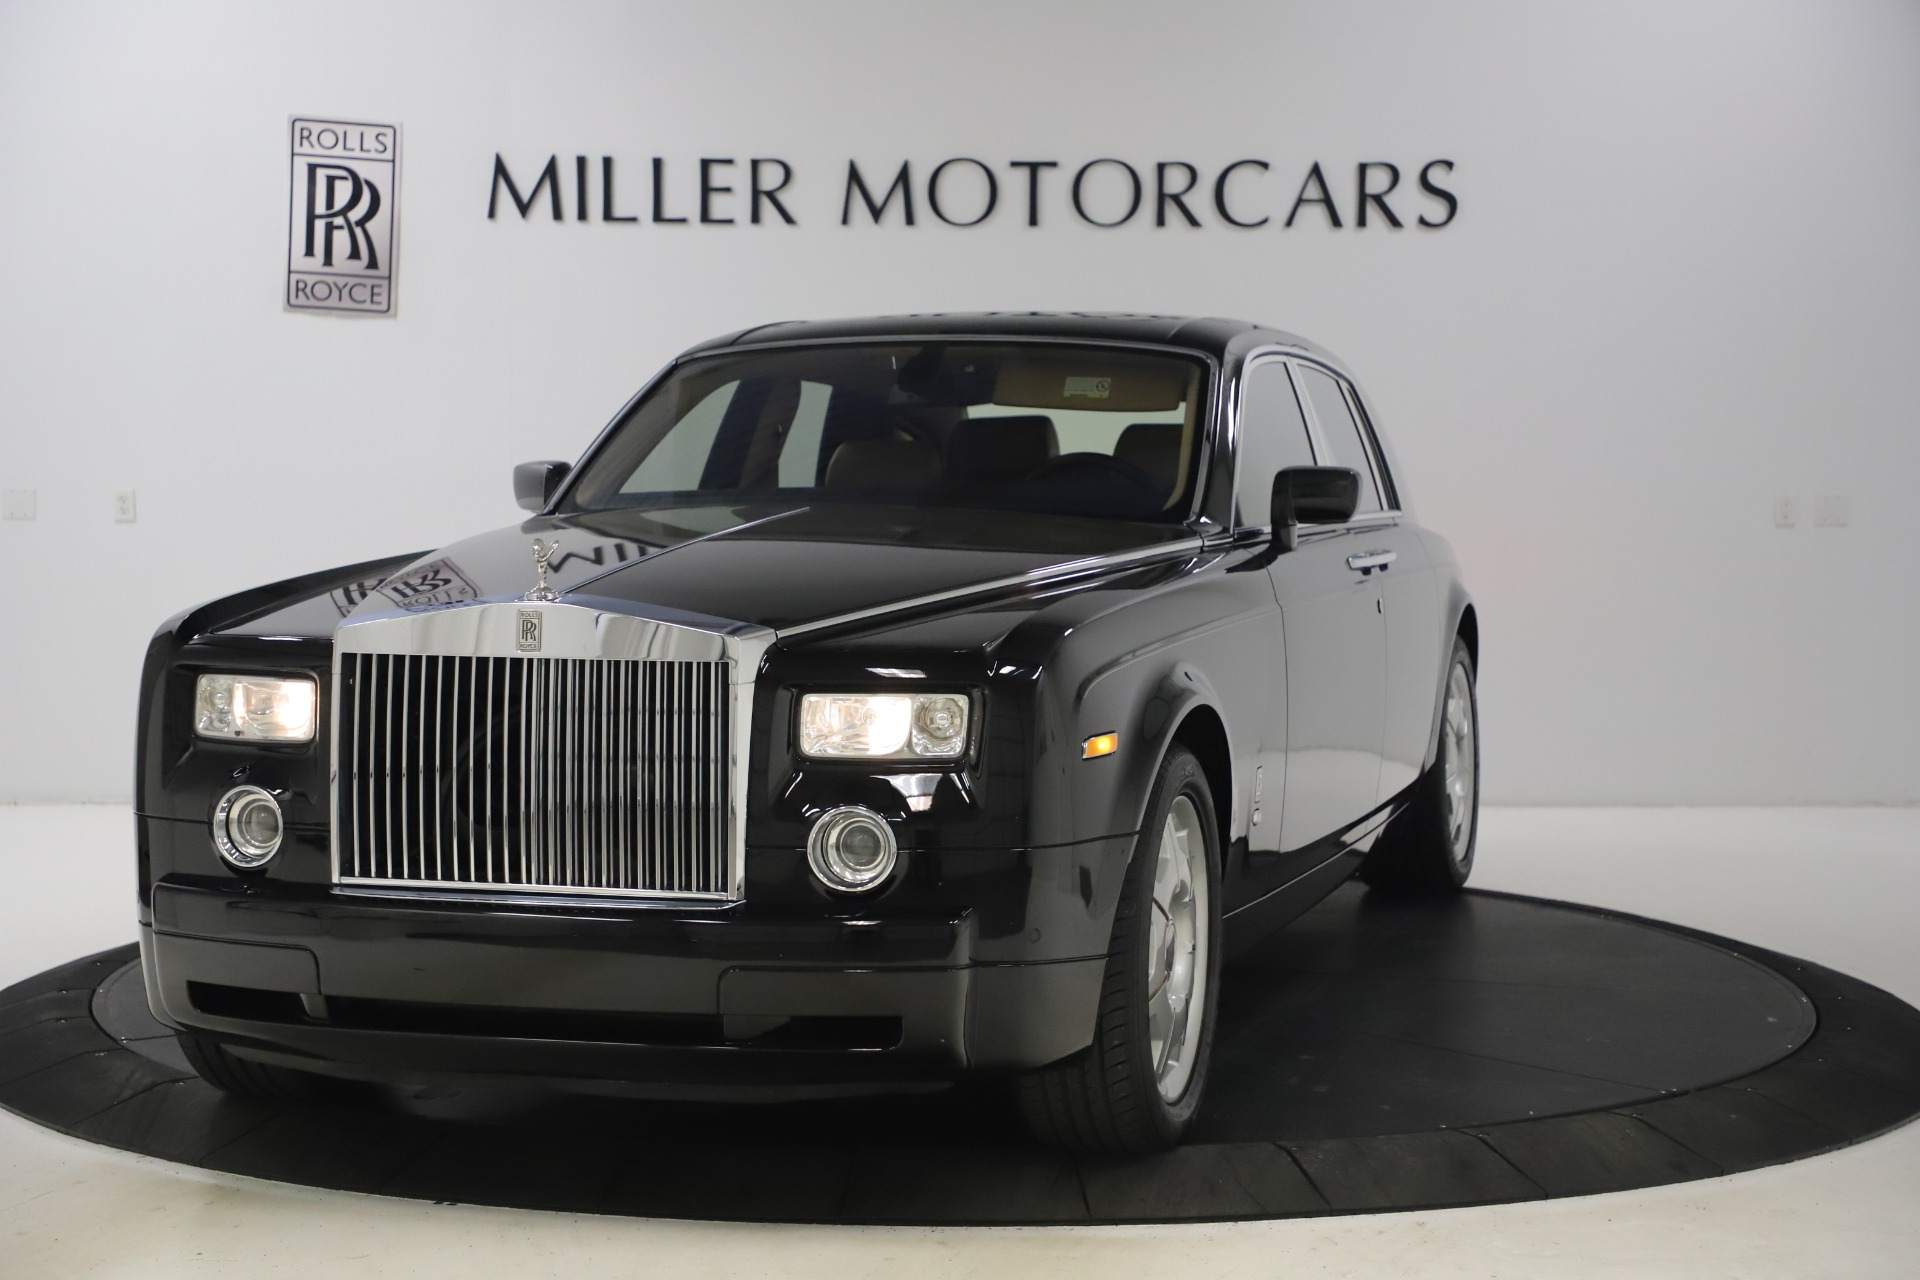 Used 2006 Rolls-Royce Phantom for sale $109,900 at Rolls-Royce Motor Cars Greenwich in Greenwich CT 06830 1